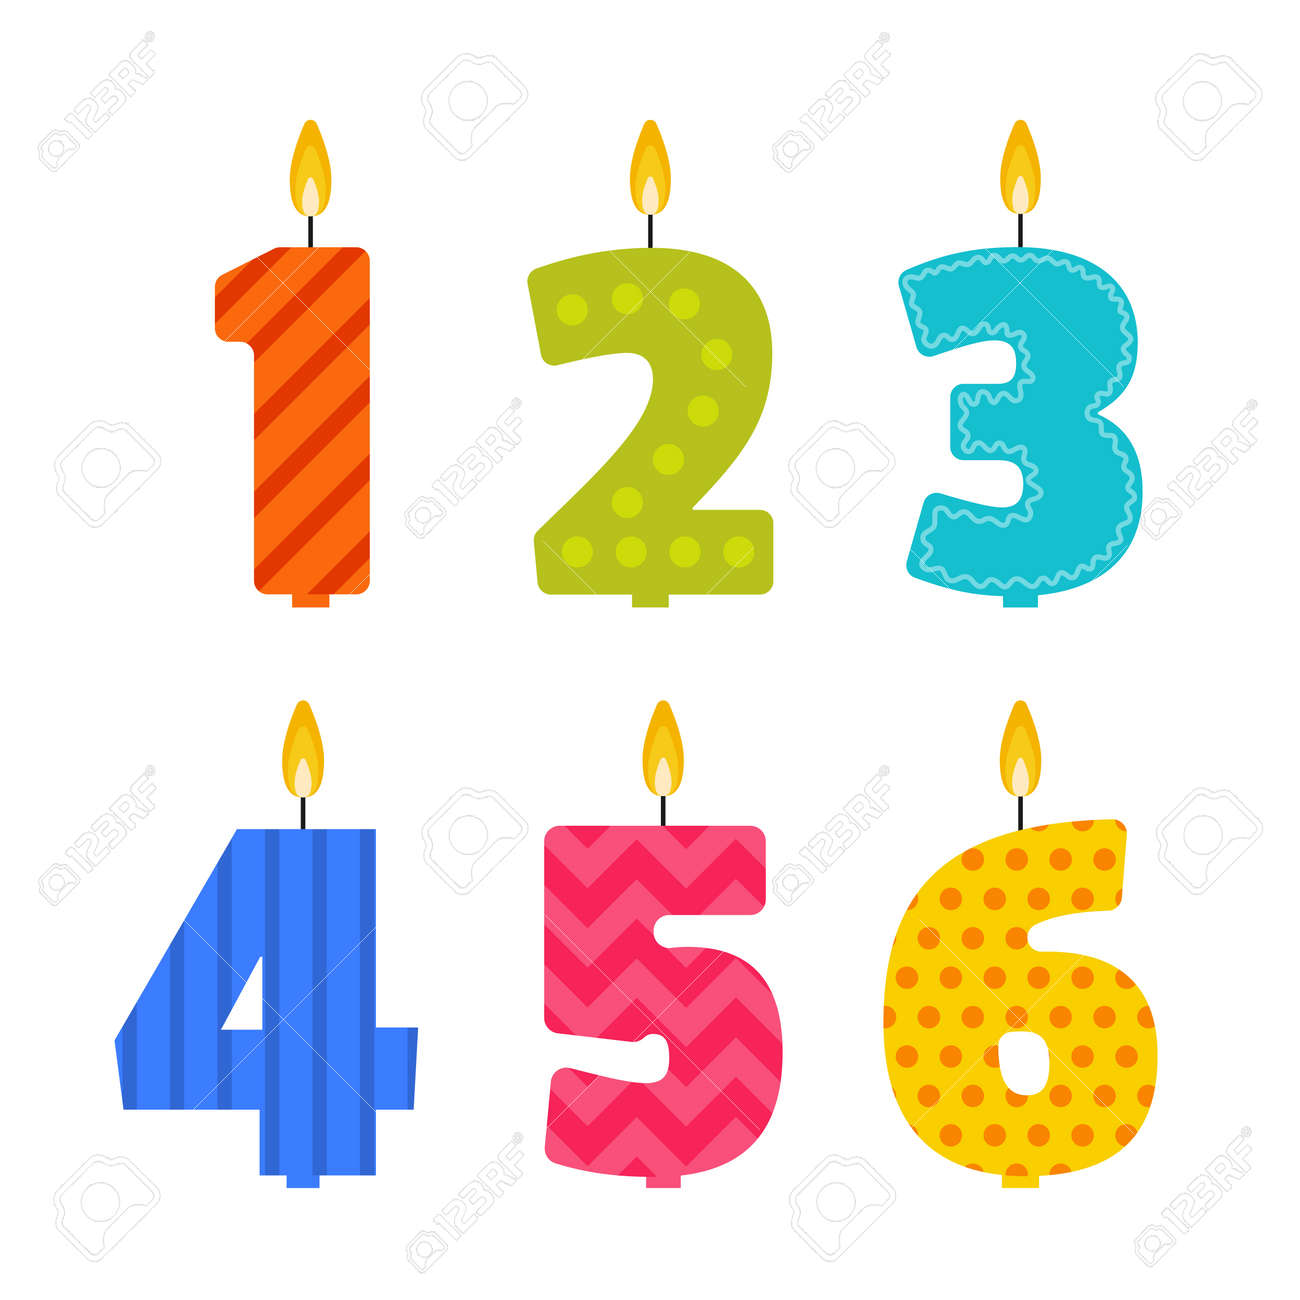 Flat Design Birthday Candle Set In The Shape Of Numbers 1 2 3